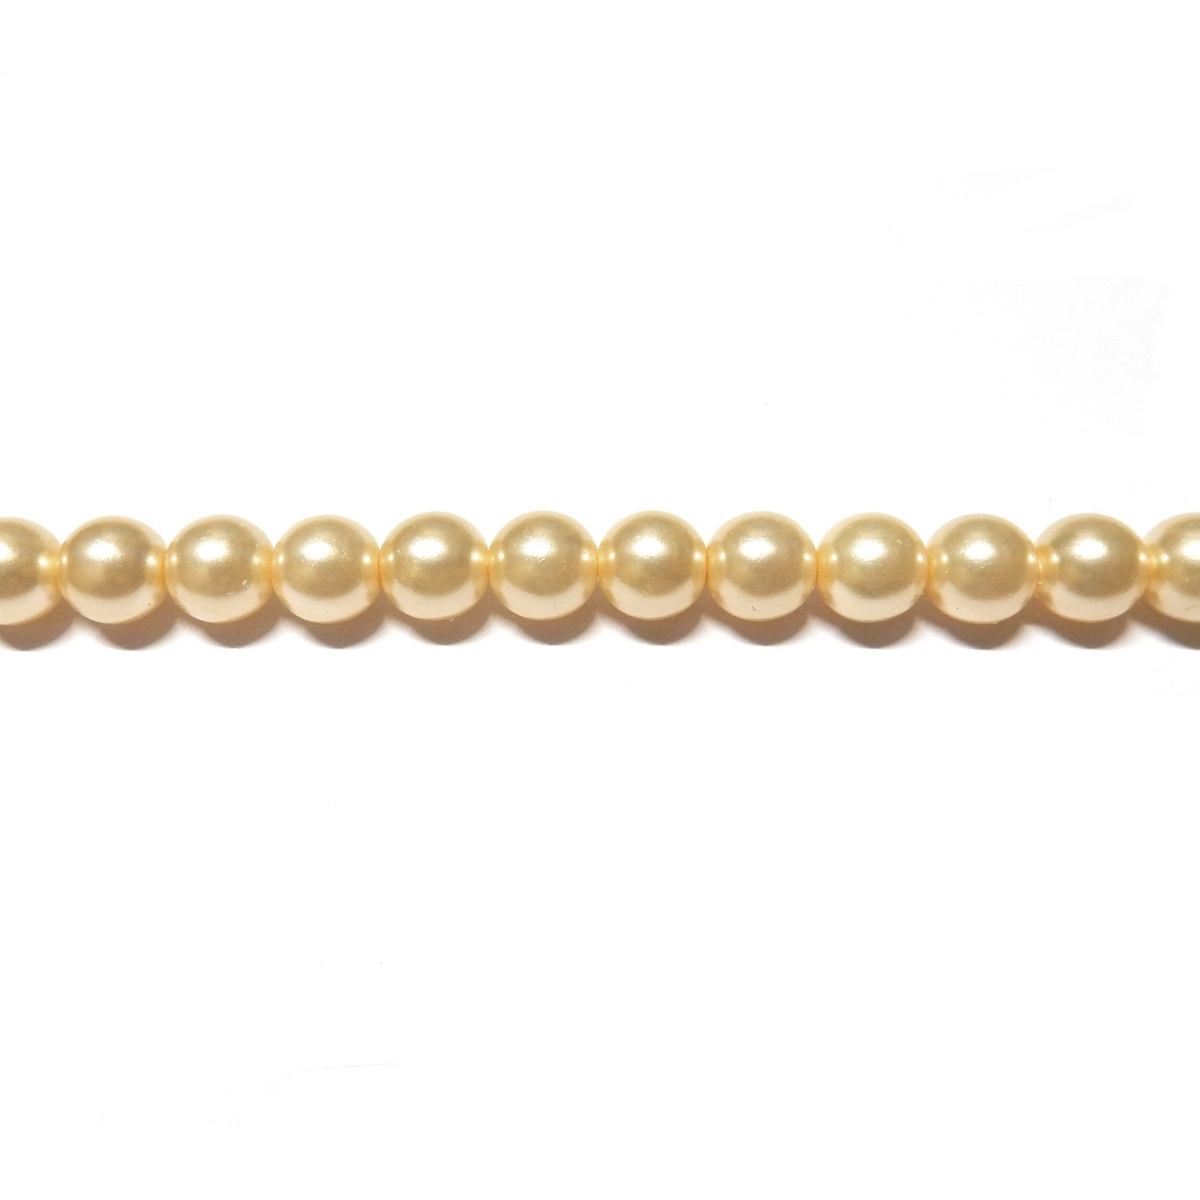 Round Glass Pearls 4mm - Cream Colour